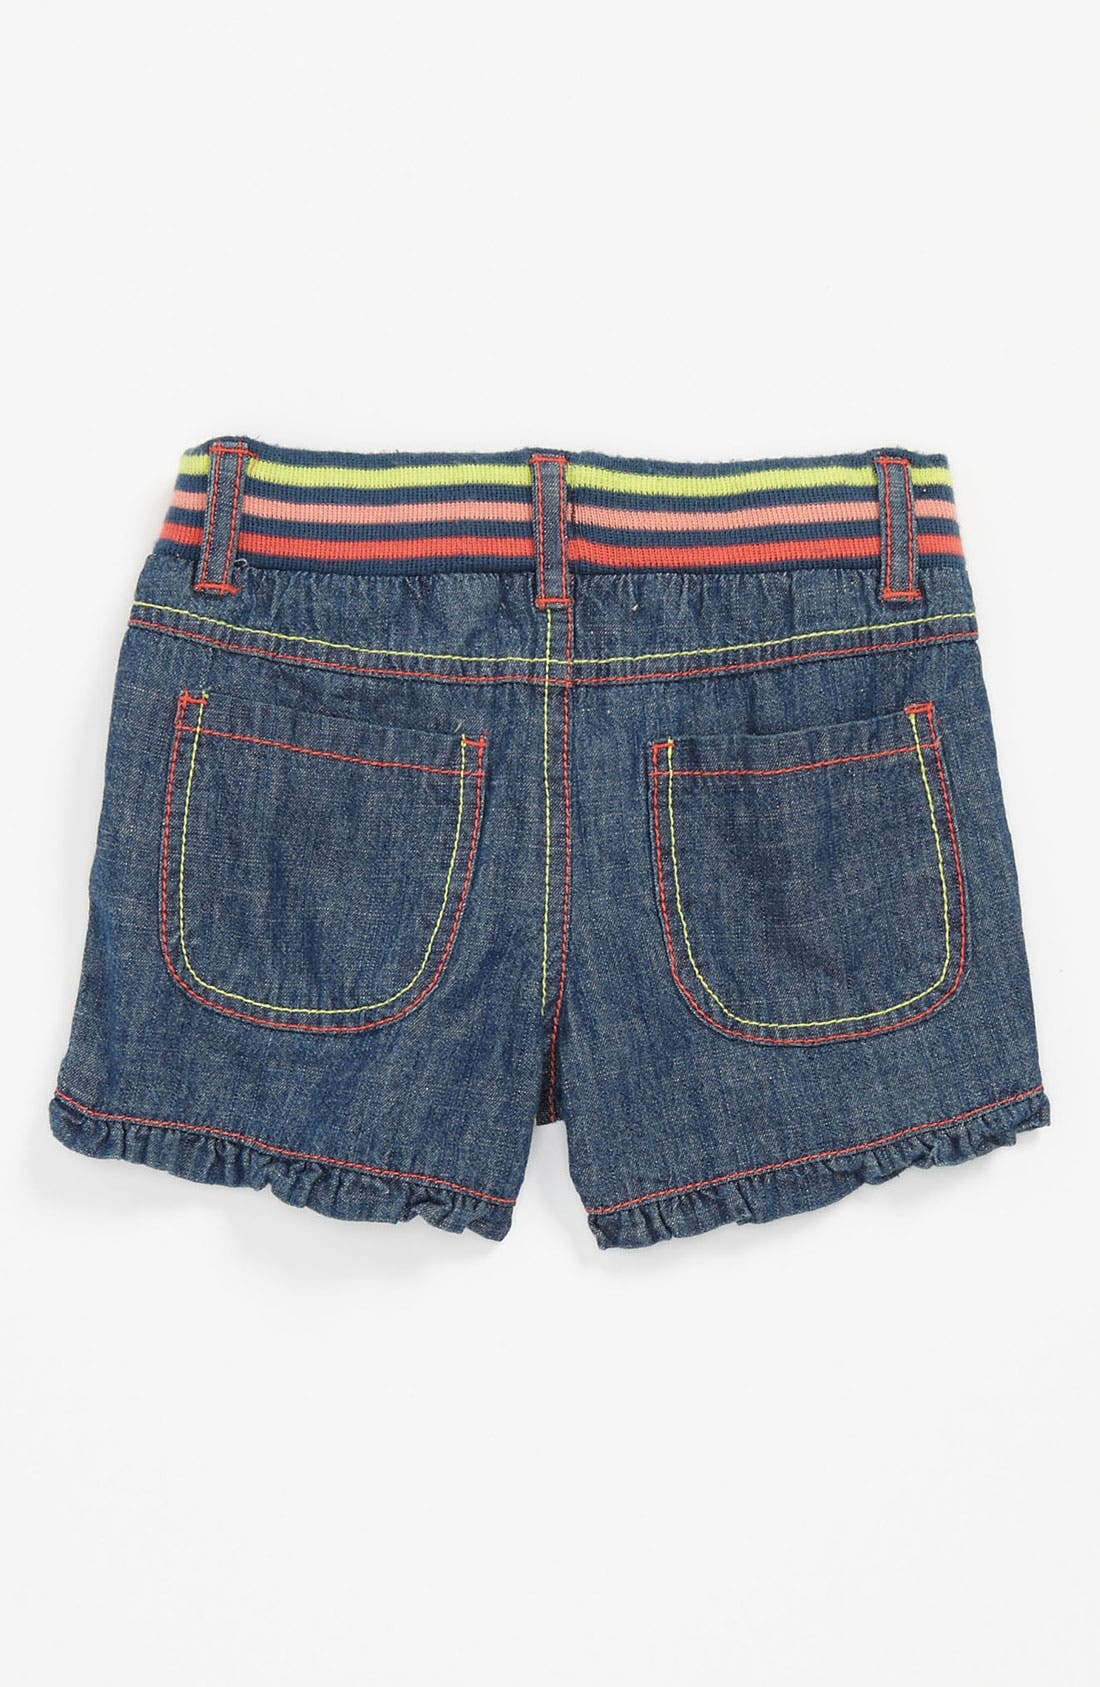 Main Image - Pumpkin Patch Denim Shorts (Toddler)